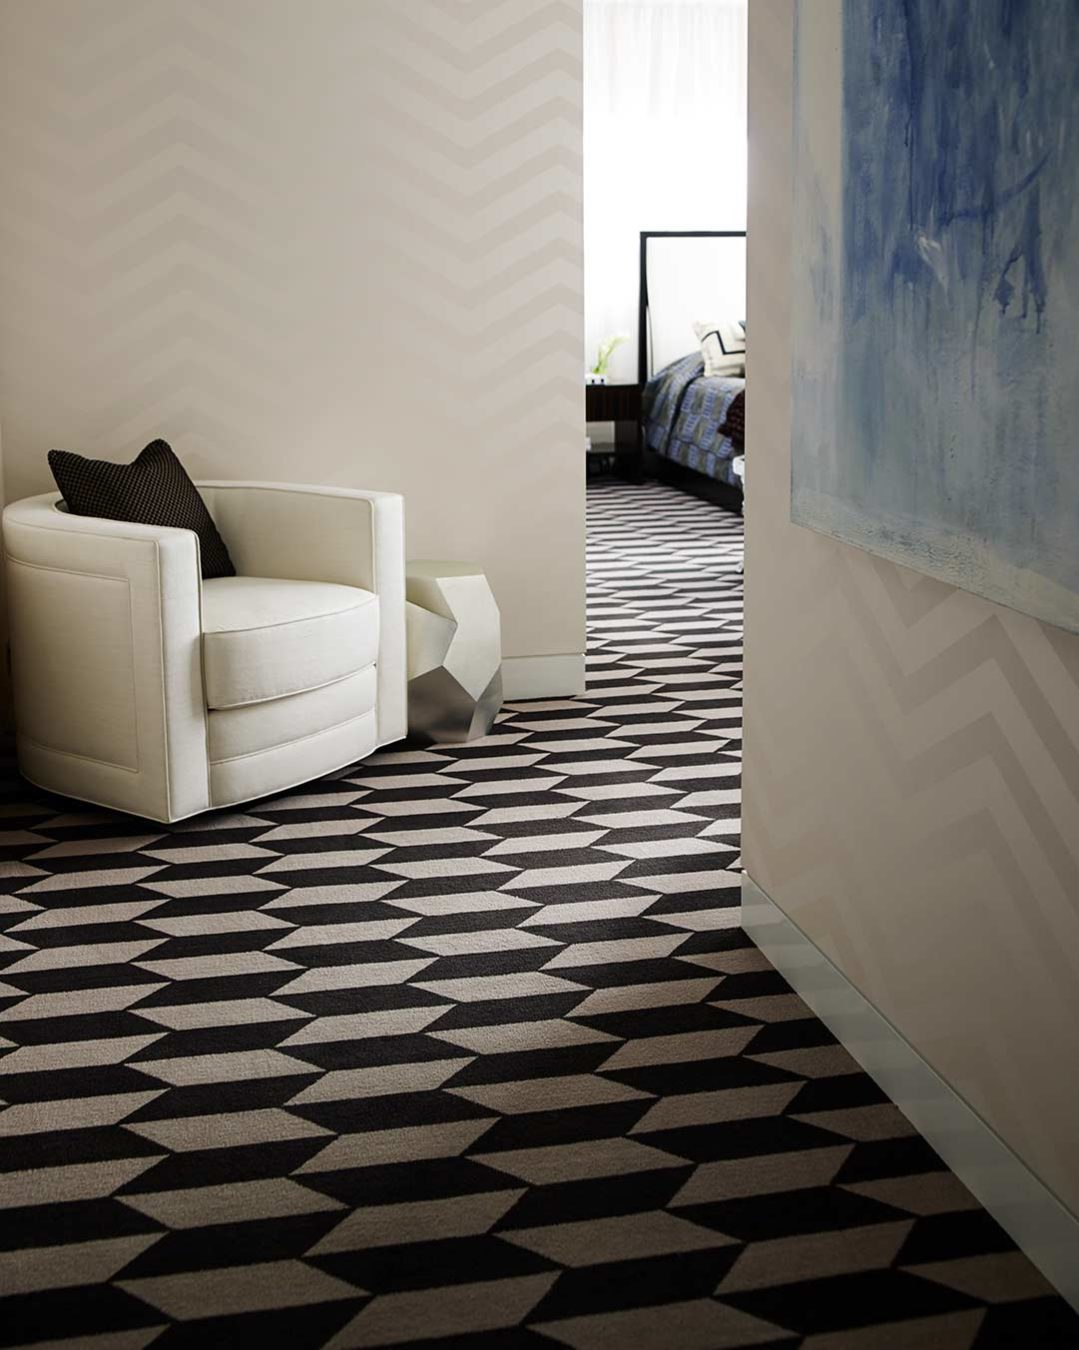 Hallway view of Christian geometric Axminster carpet by Greg Natale